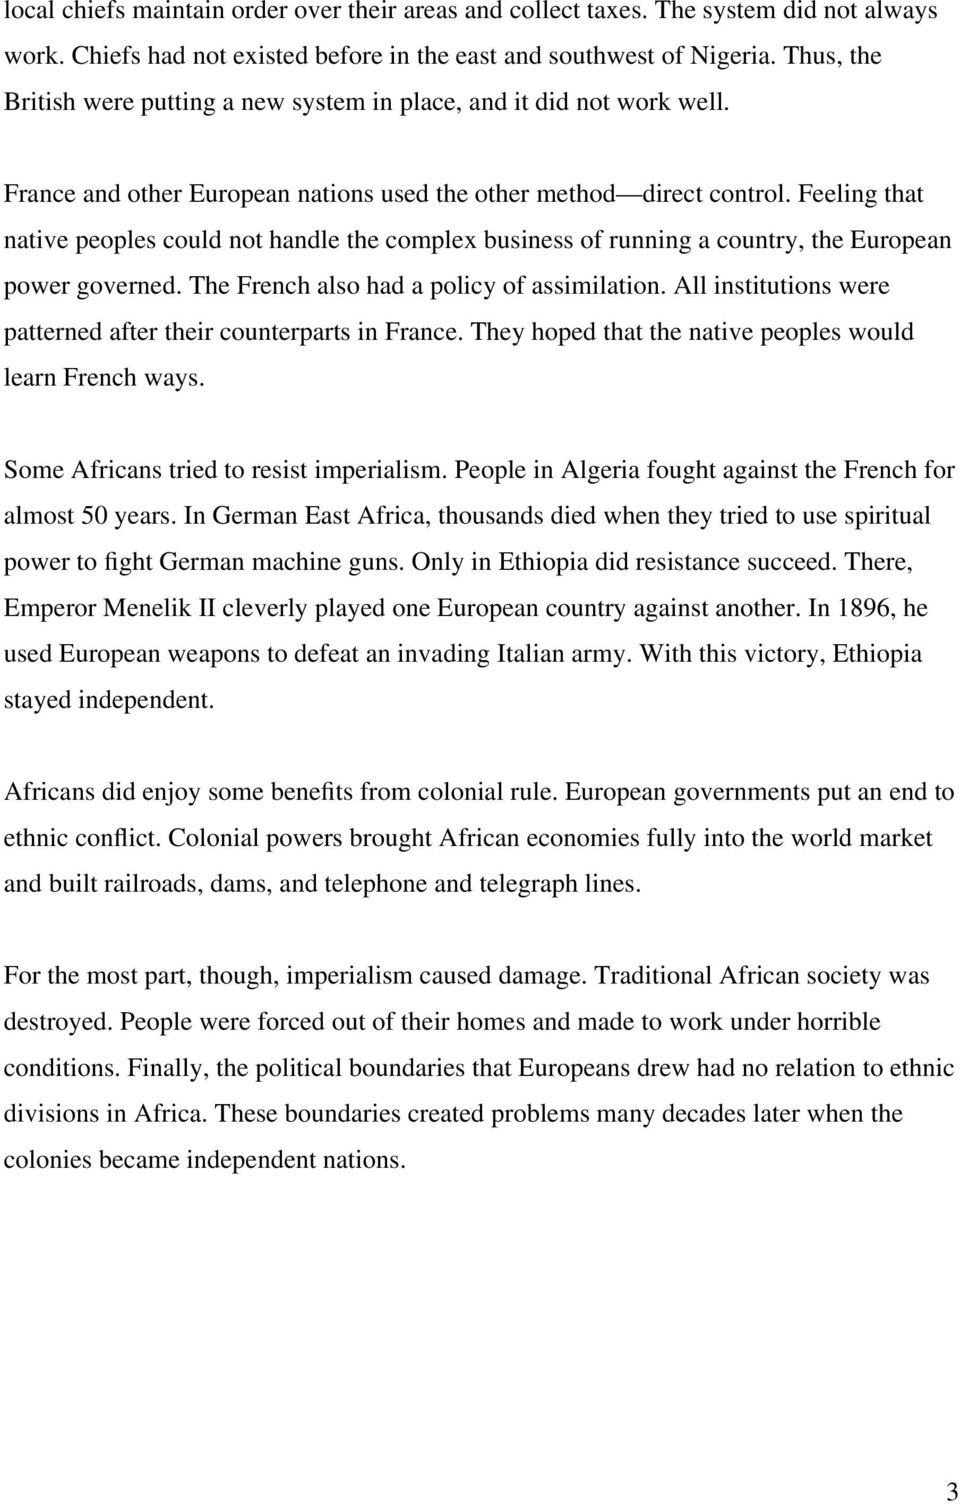 Feeling that native peoples could not handle the complex business of running a country, the European power governed. The French also had a policy of assimilation.